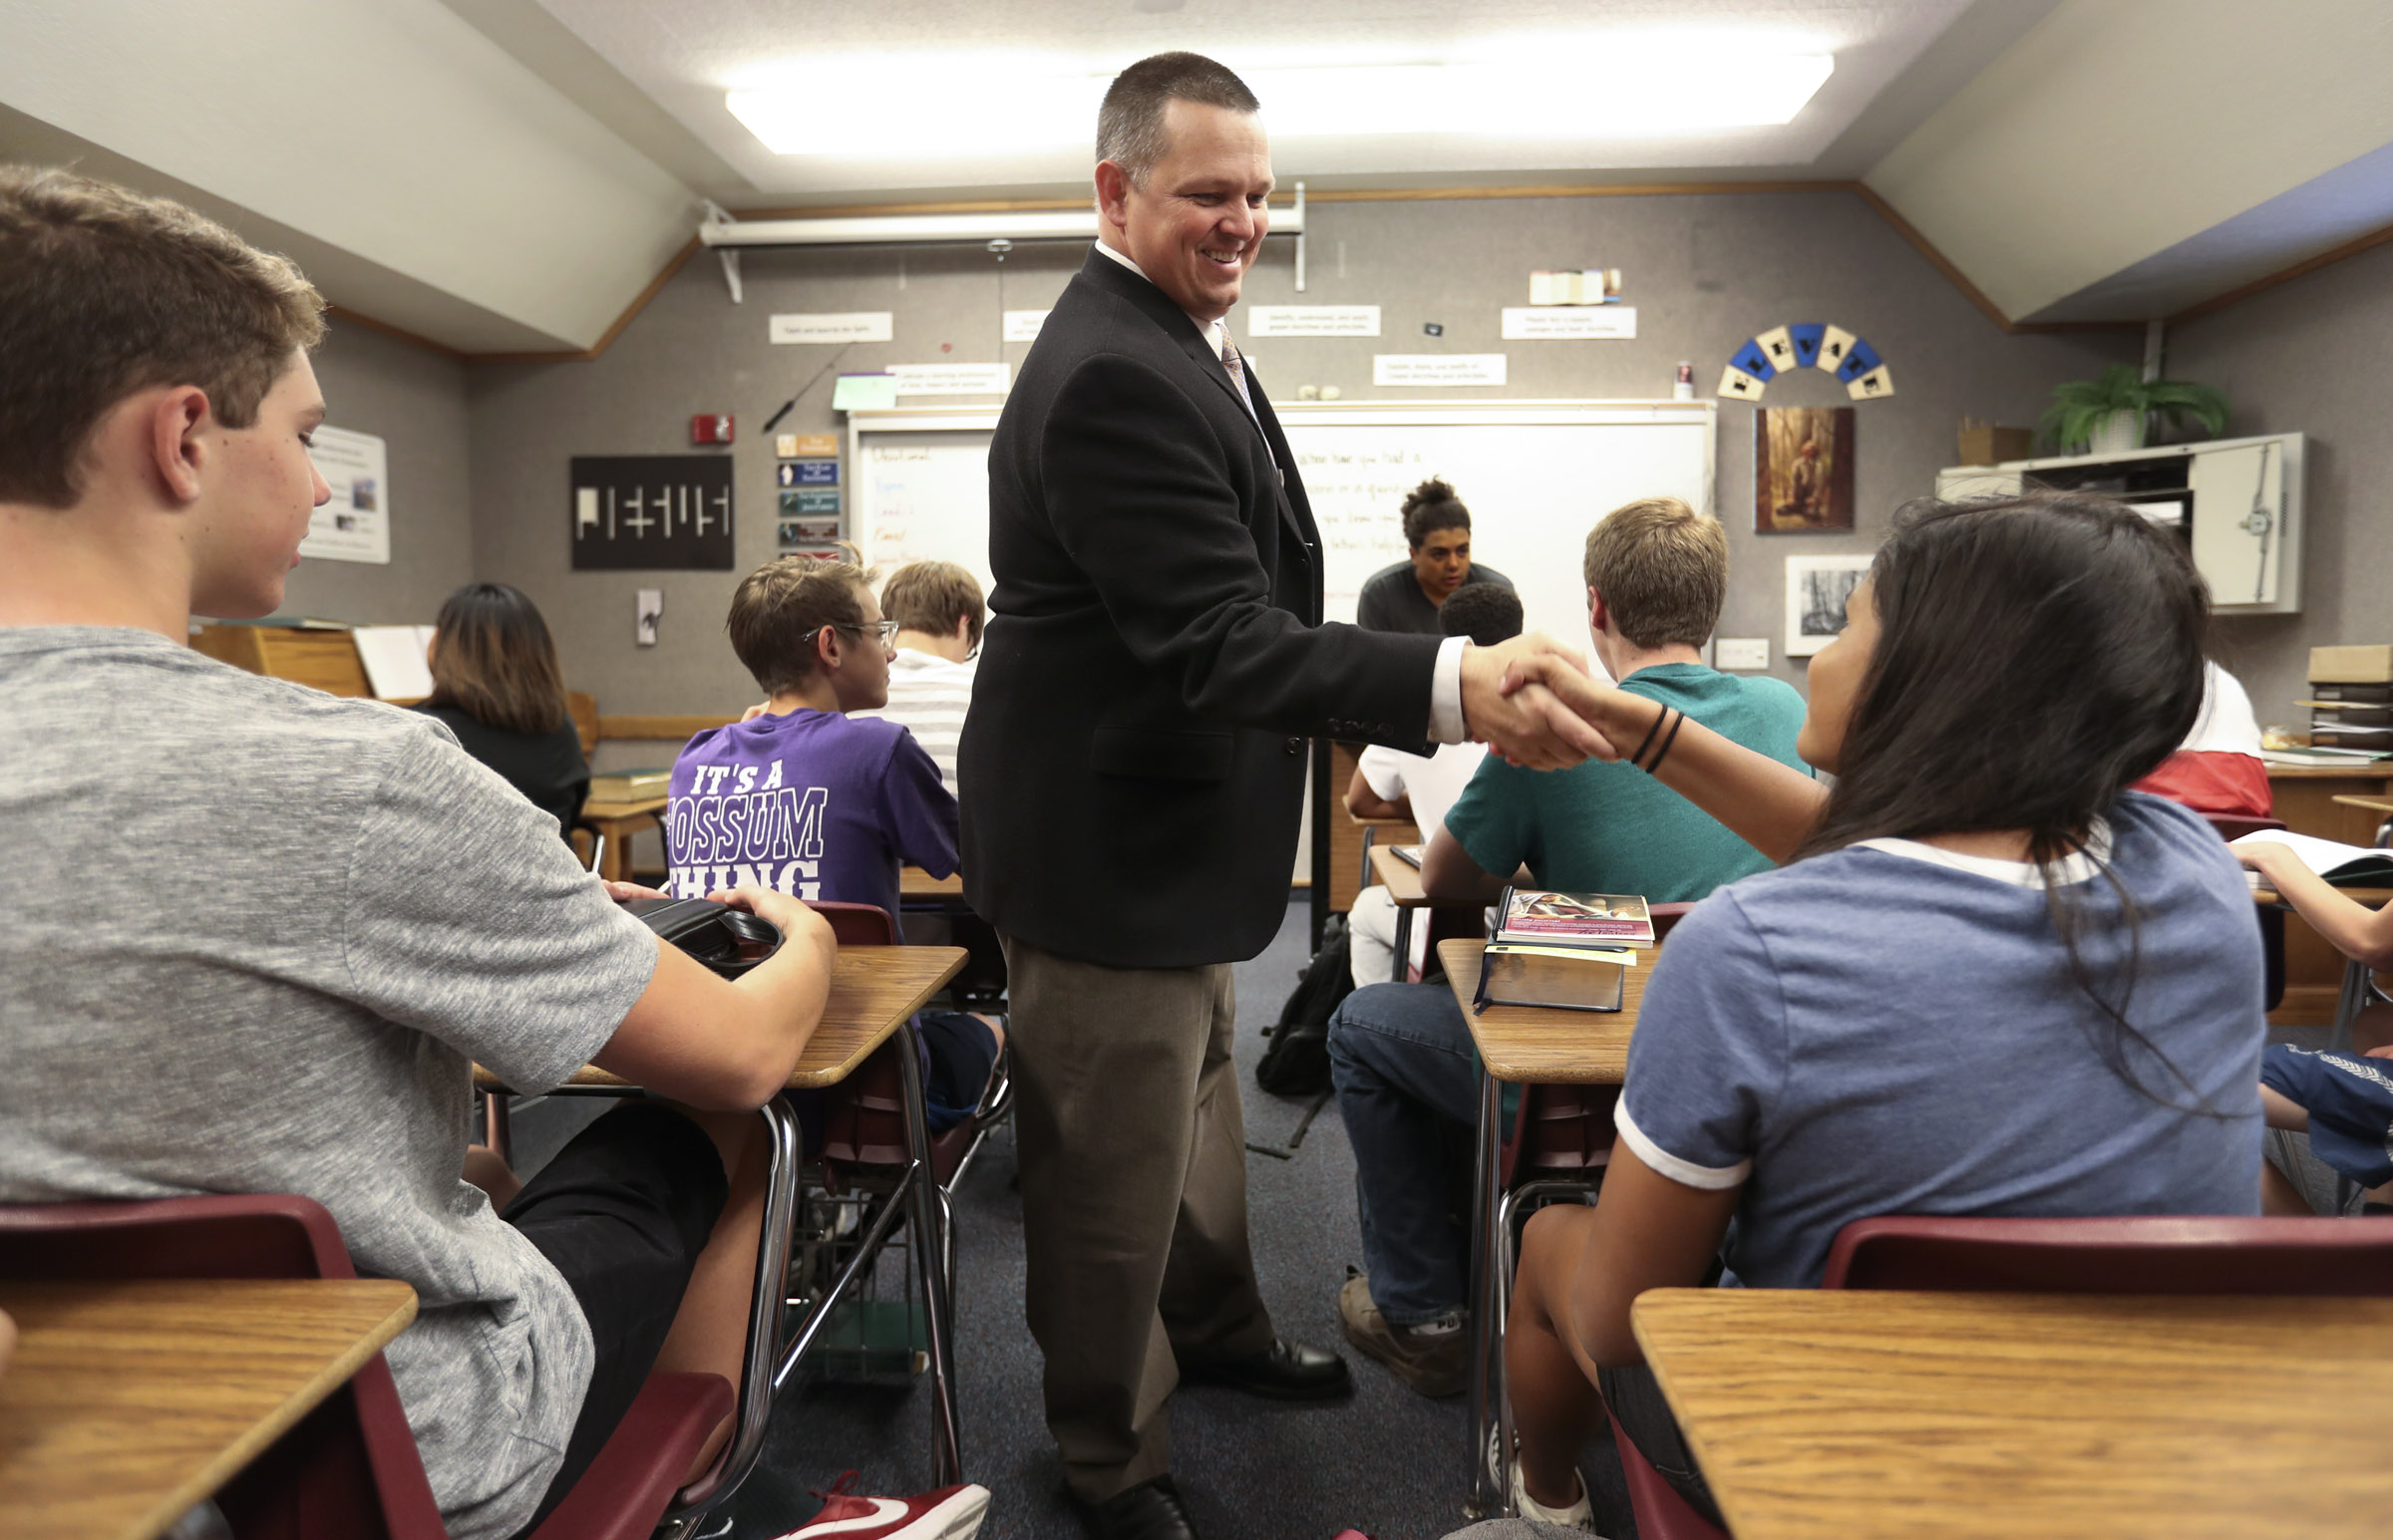 West High's Seminary principal, Trent Smith, shakes hands with his students at the start of his LDS seminary class at West High School in Salt Lake City on Monday, Sept. 17, 2018.